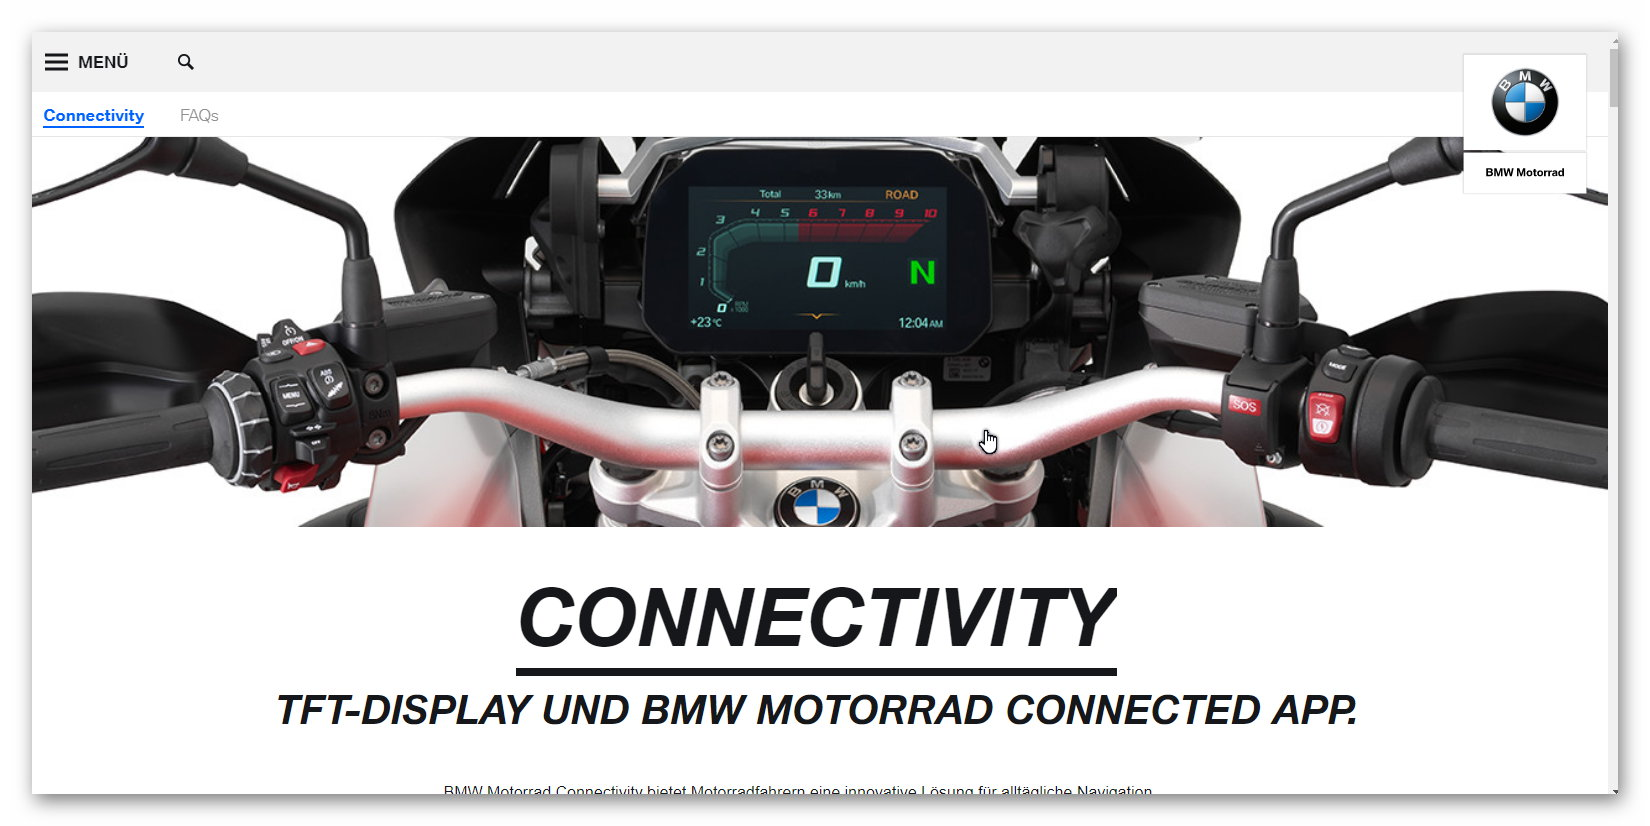 hat schon jemand die bmw motorrad connected app auf tomtom. Black Bedroom Furniture Sets. Home Design Ideas